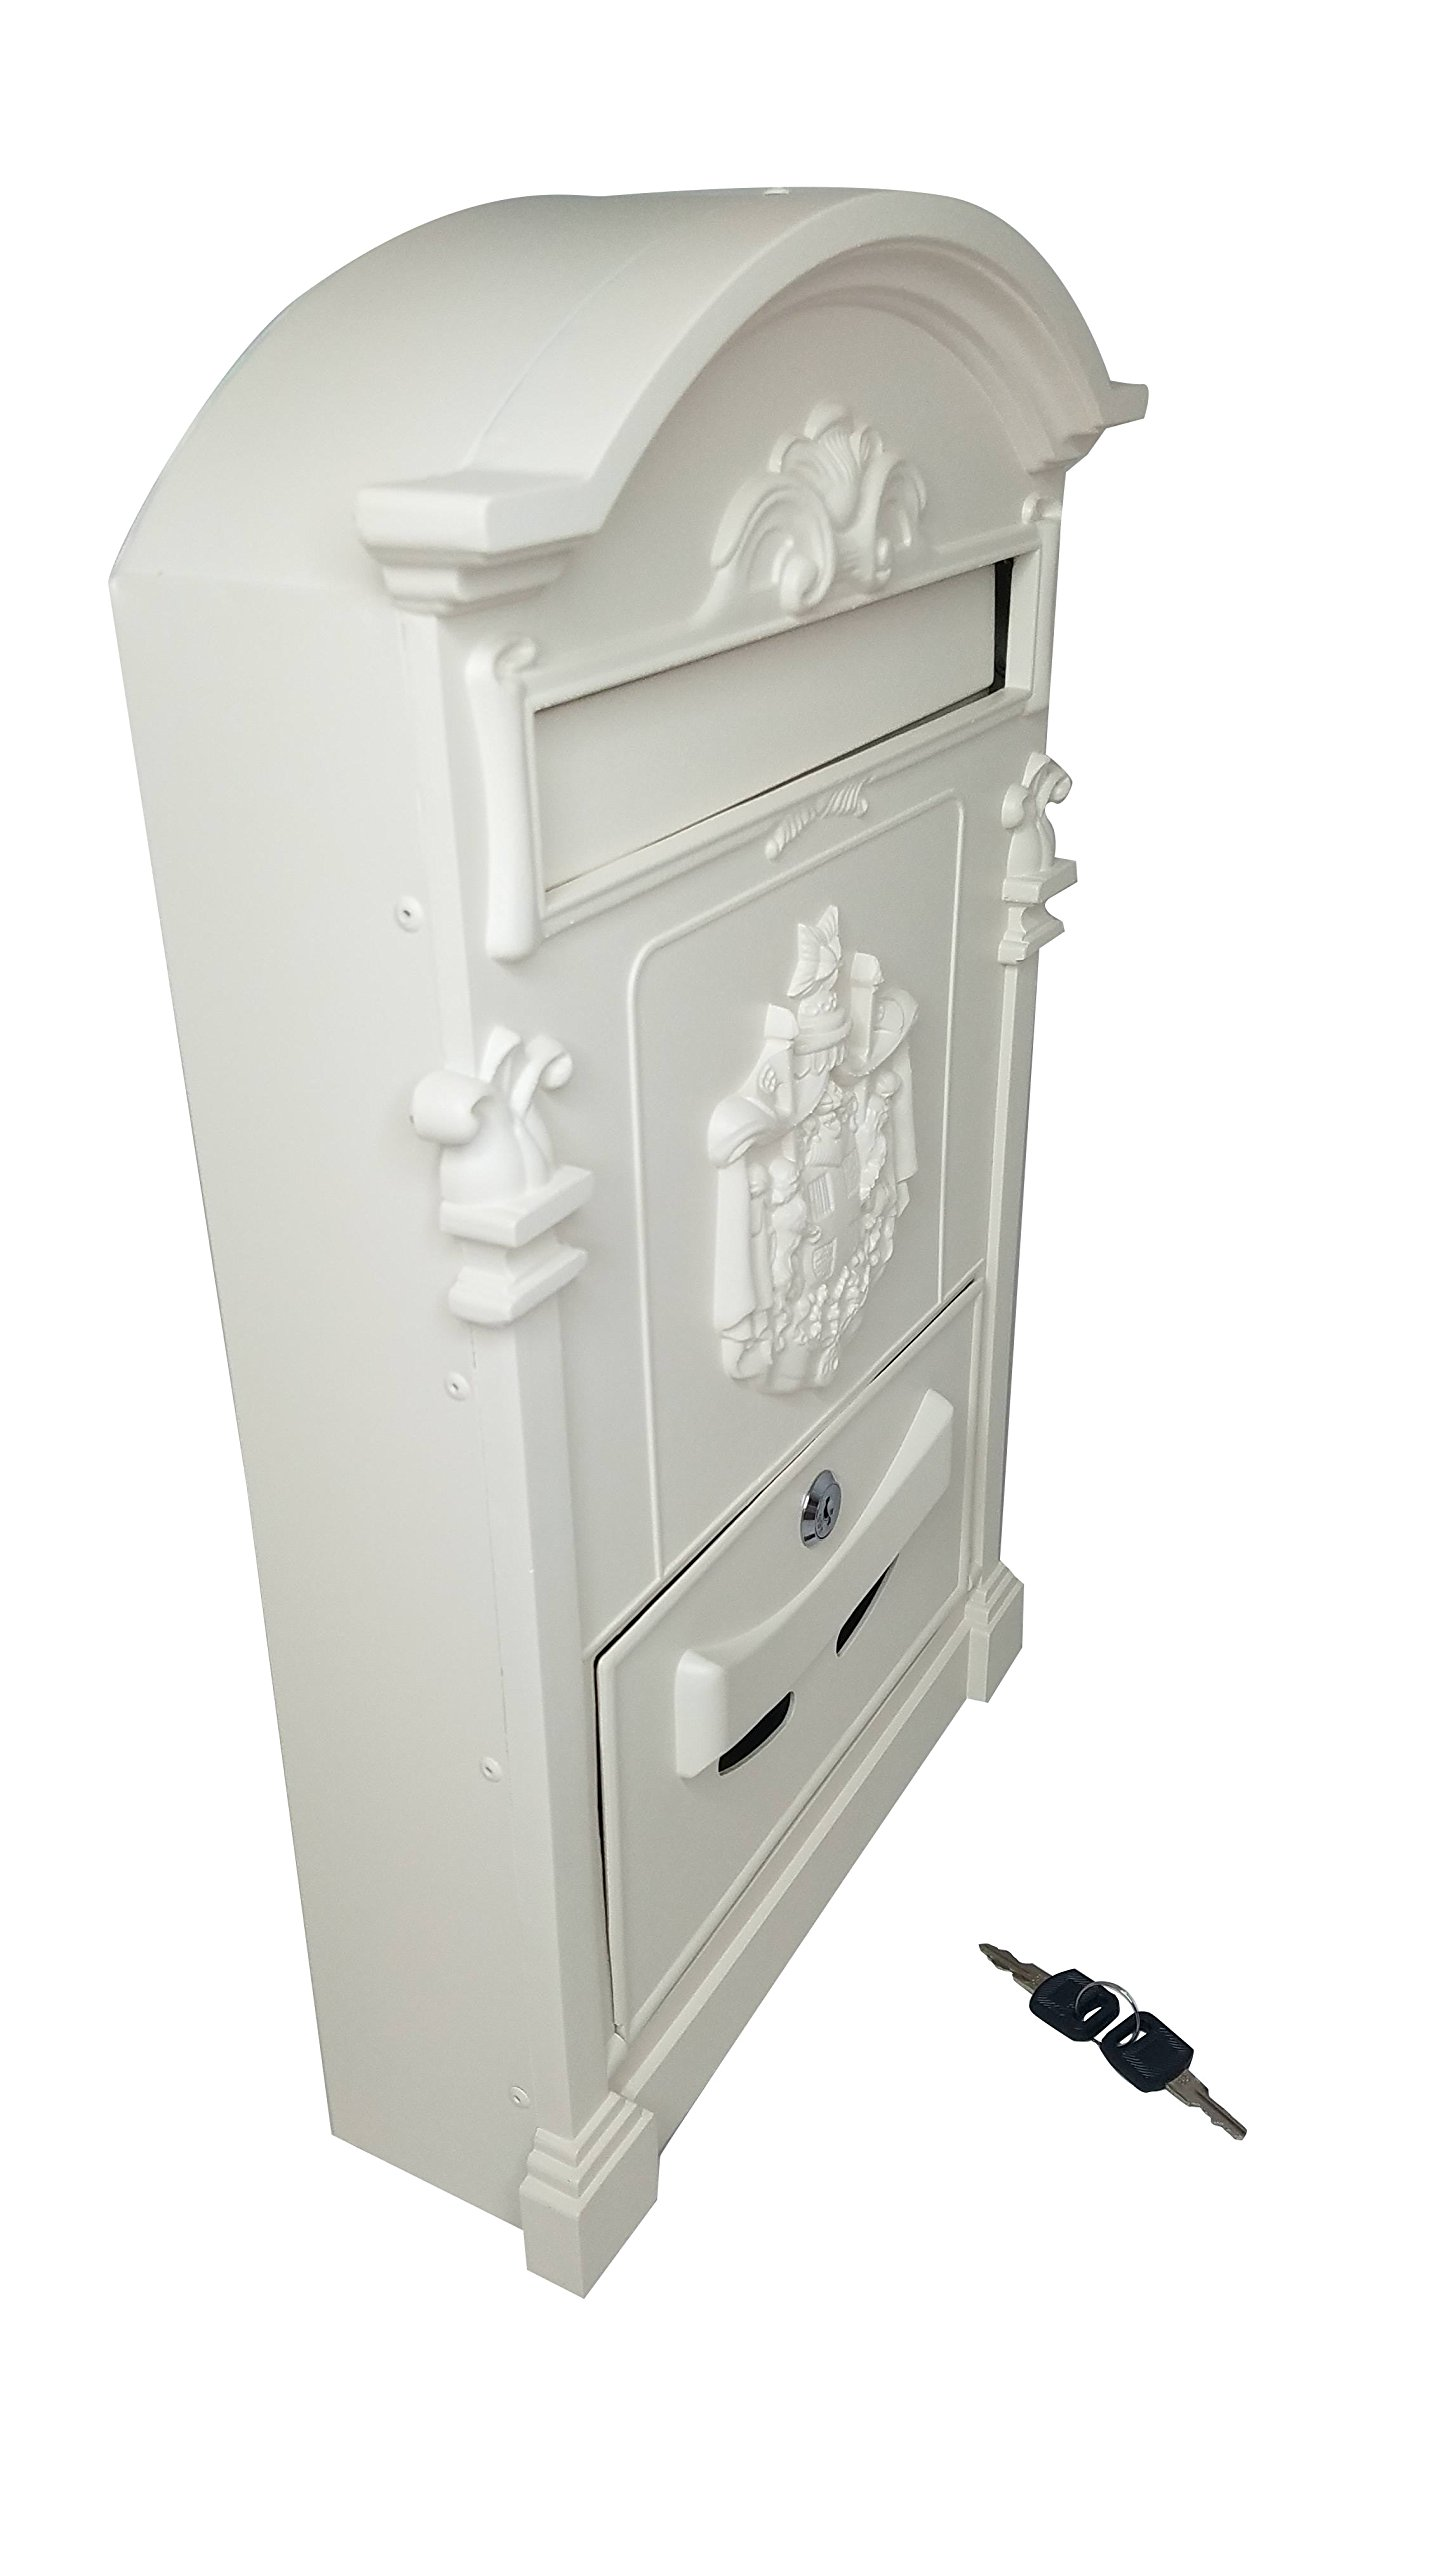 Locking Wall Mounted Mailbox - Vintage White with Crest Design - Aluminum Chic Mail Box with Keys - Secure Residential Letter Box (White) by Royal Brands